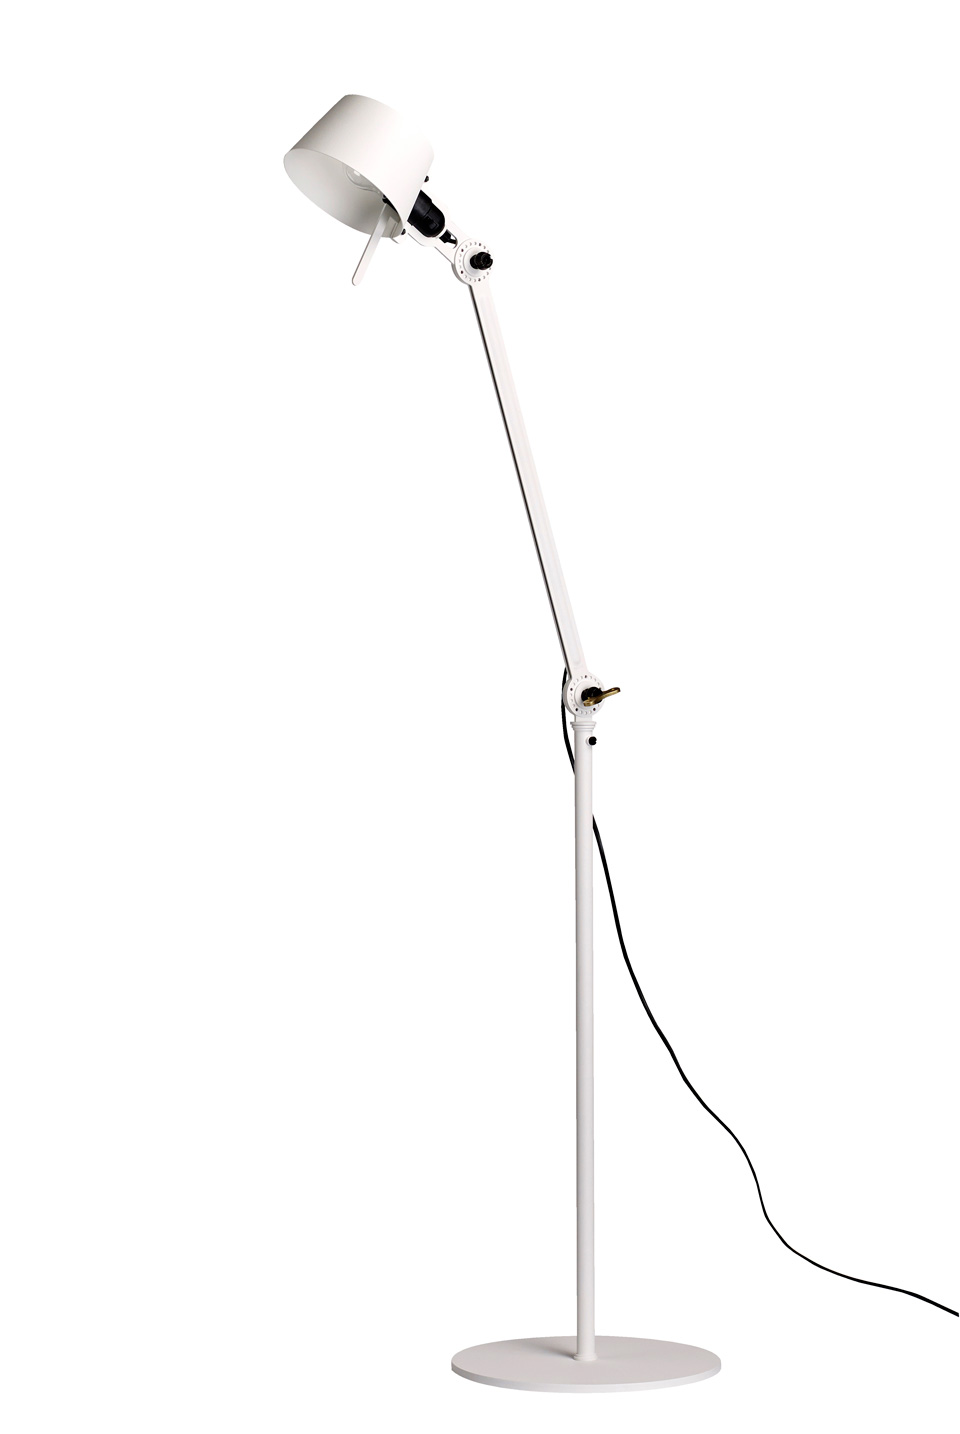 Industrial Bolt Floor Lamp in lighting white metal. Tonone.